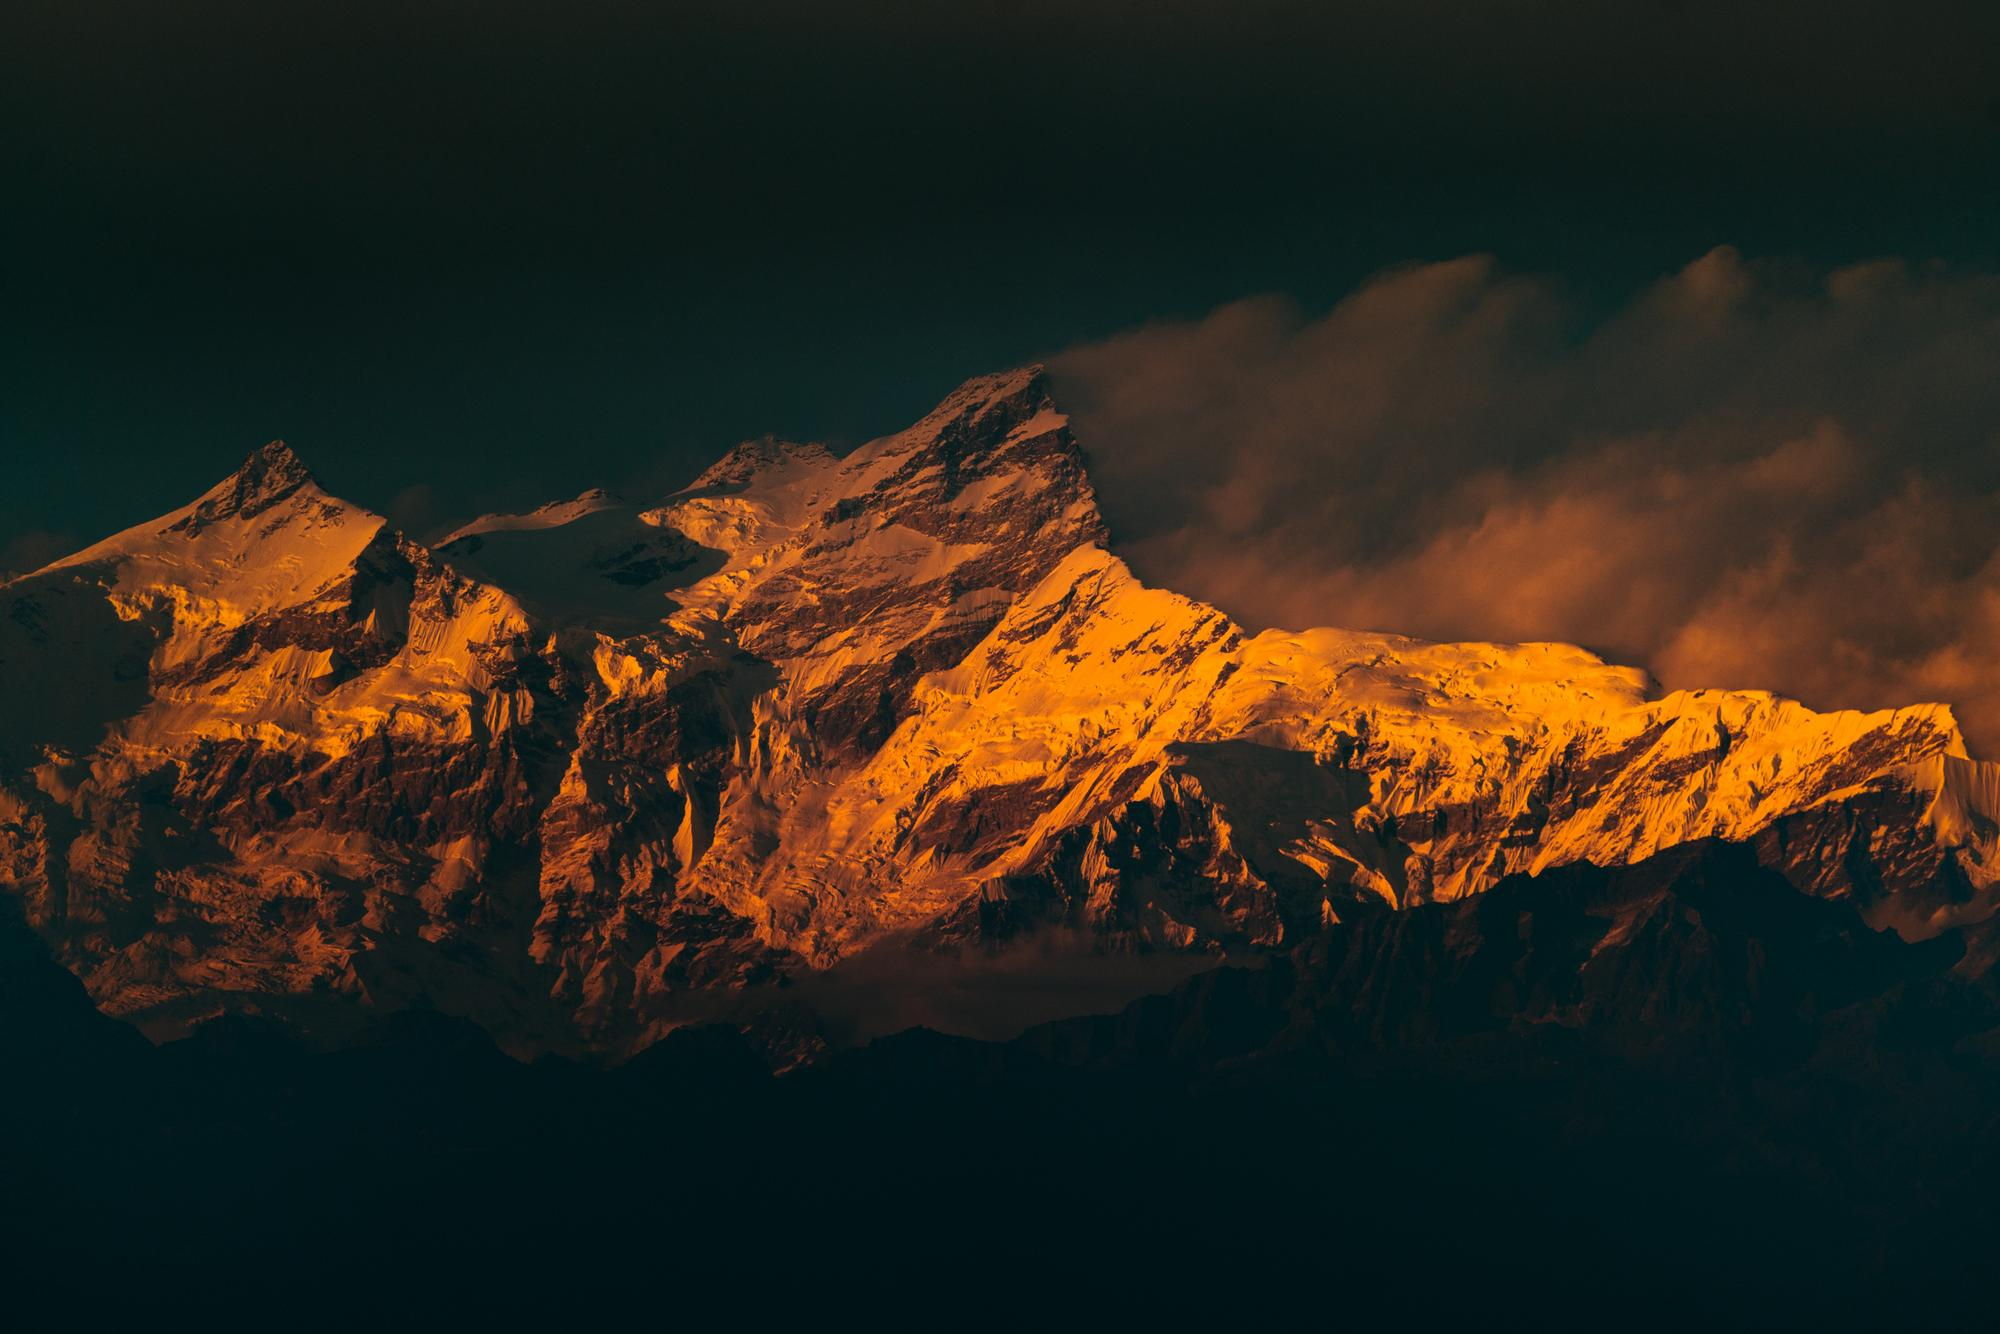 Our first view of the Himalayas